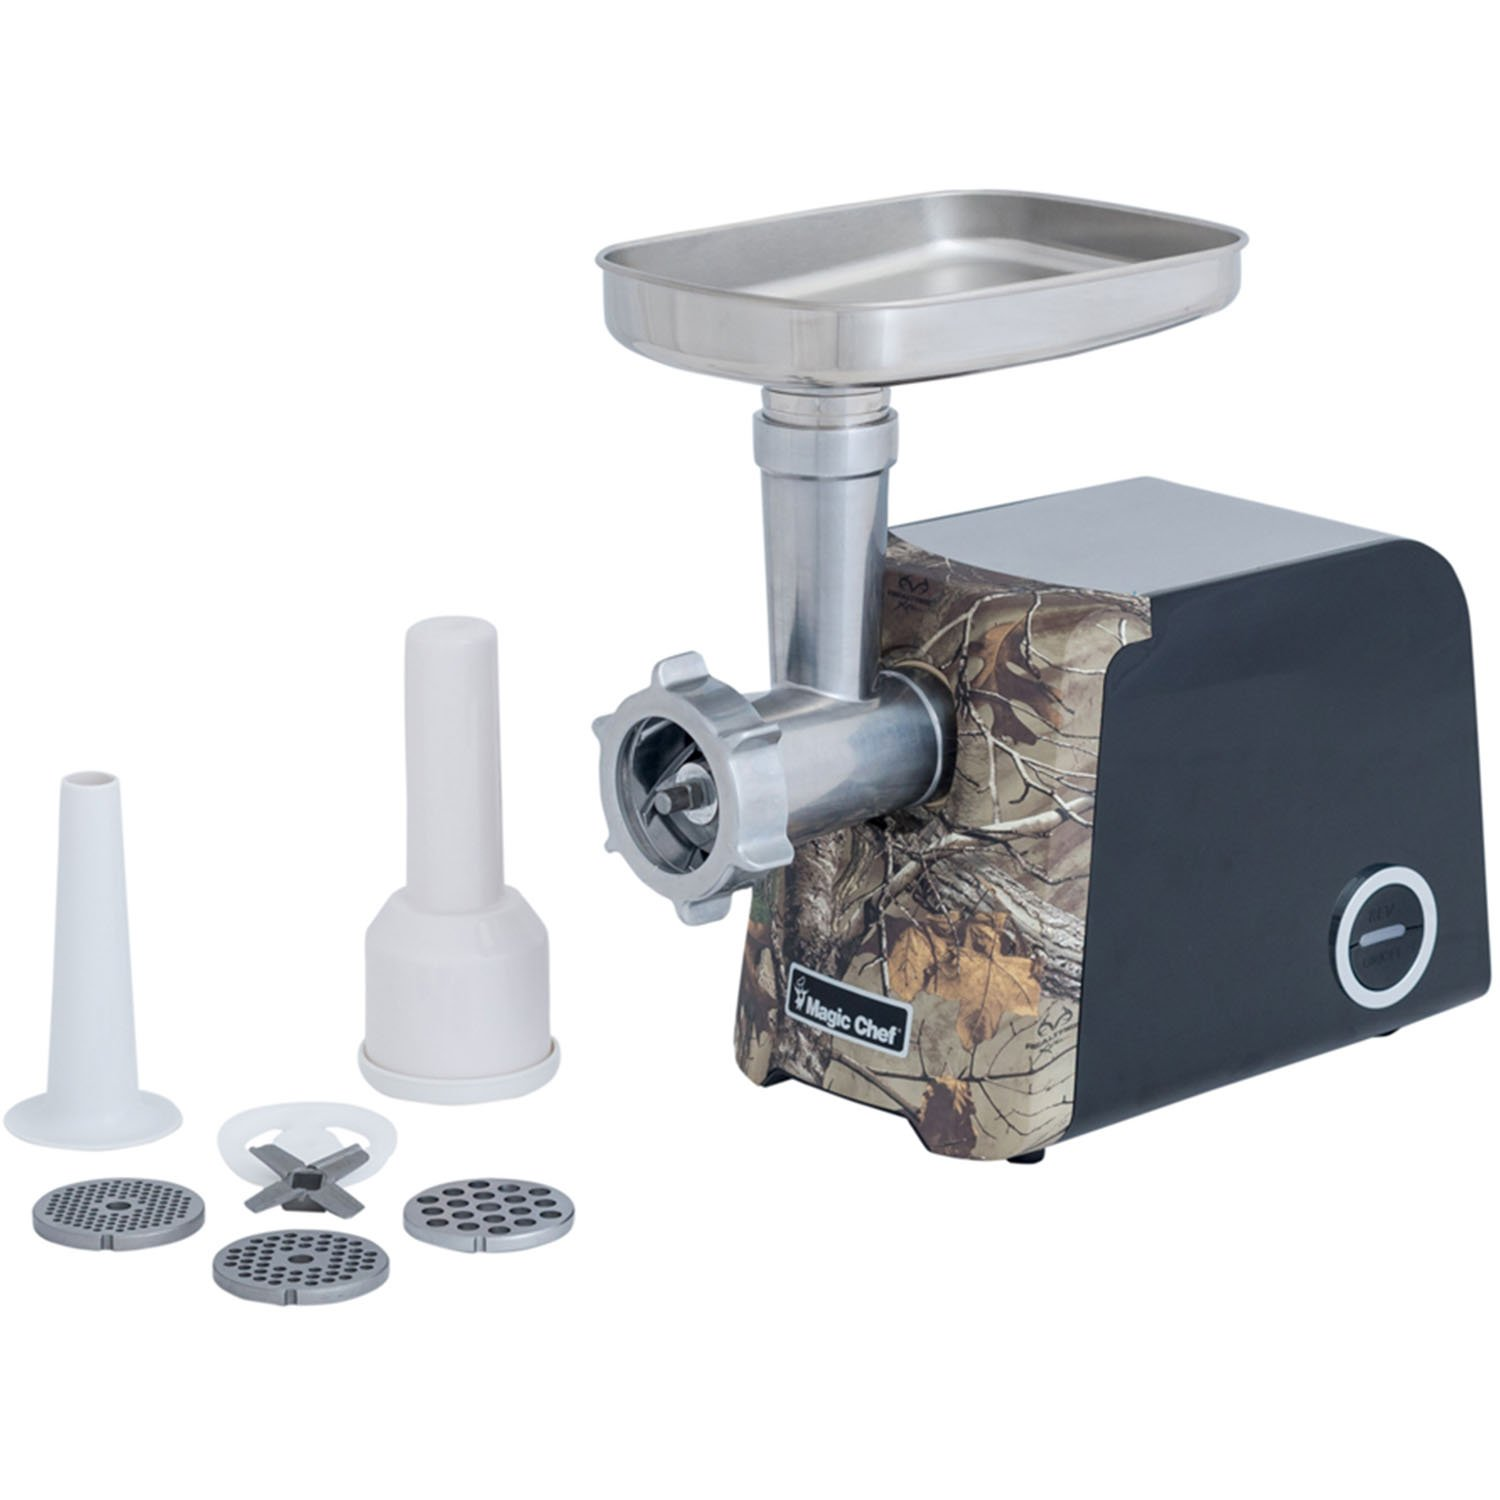 Magic Chef MCLMGRT Meat Grinder, Camouflage by Magic Chef (Image #1)